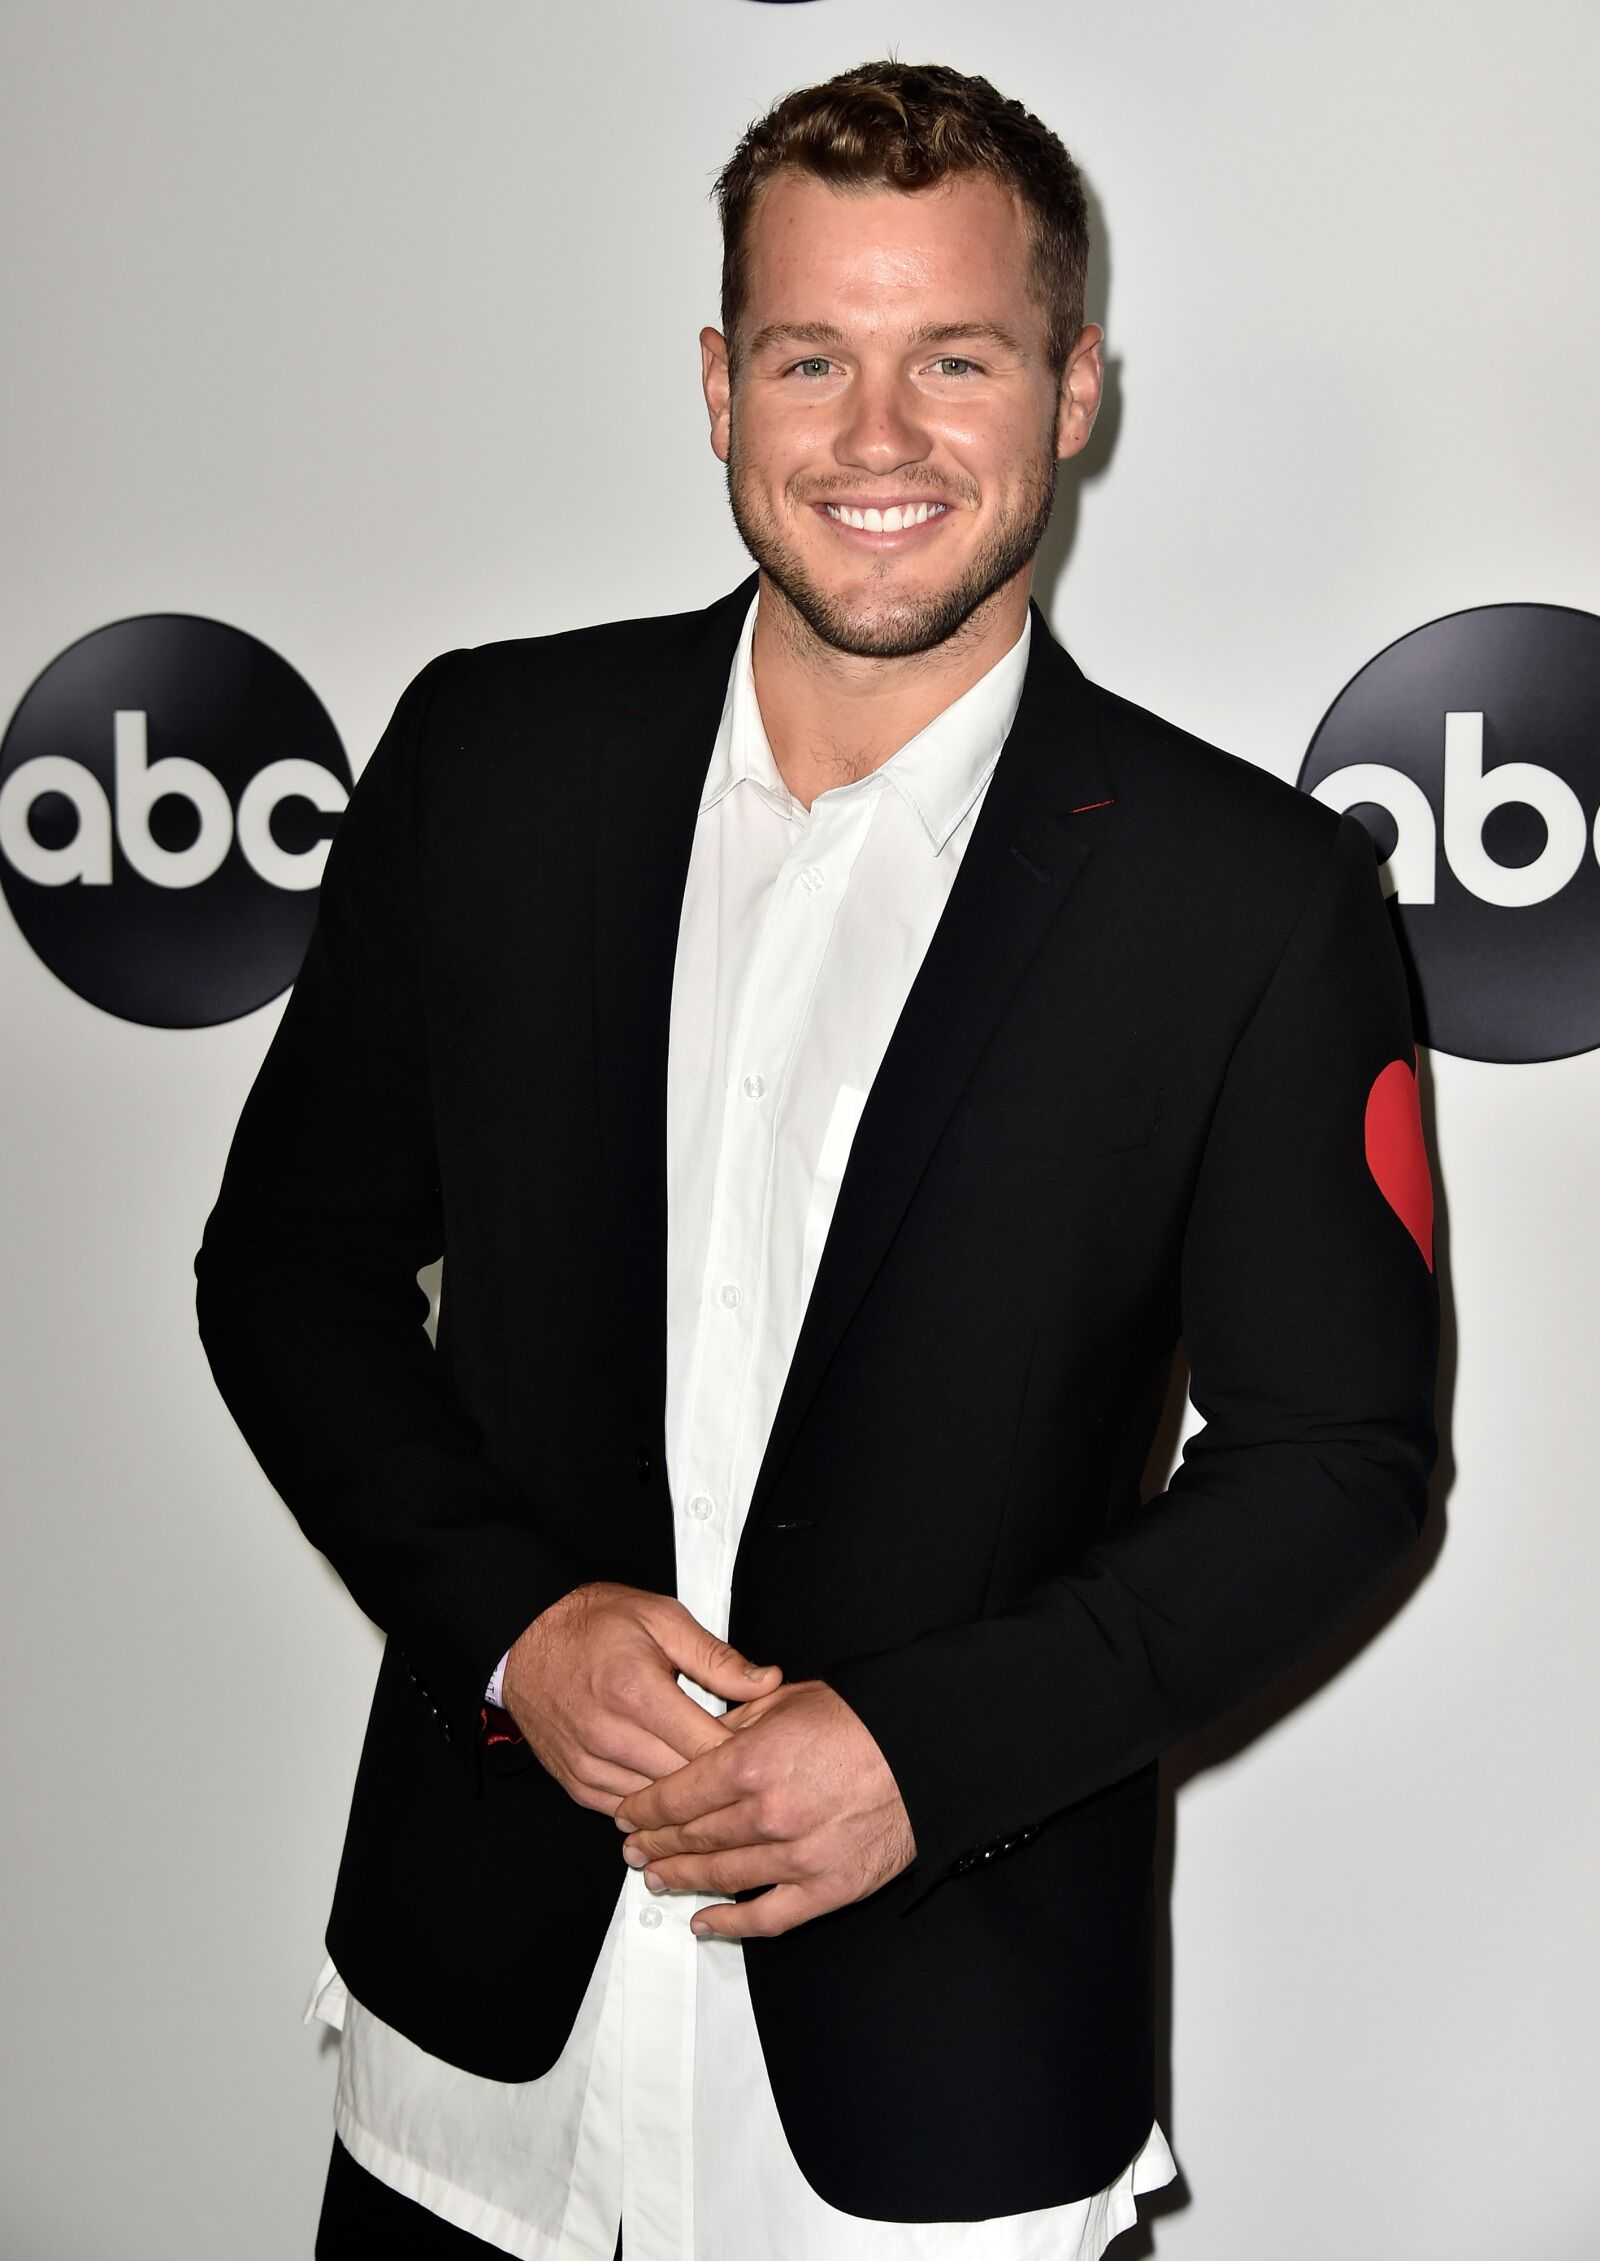 colton underwood - photo #15